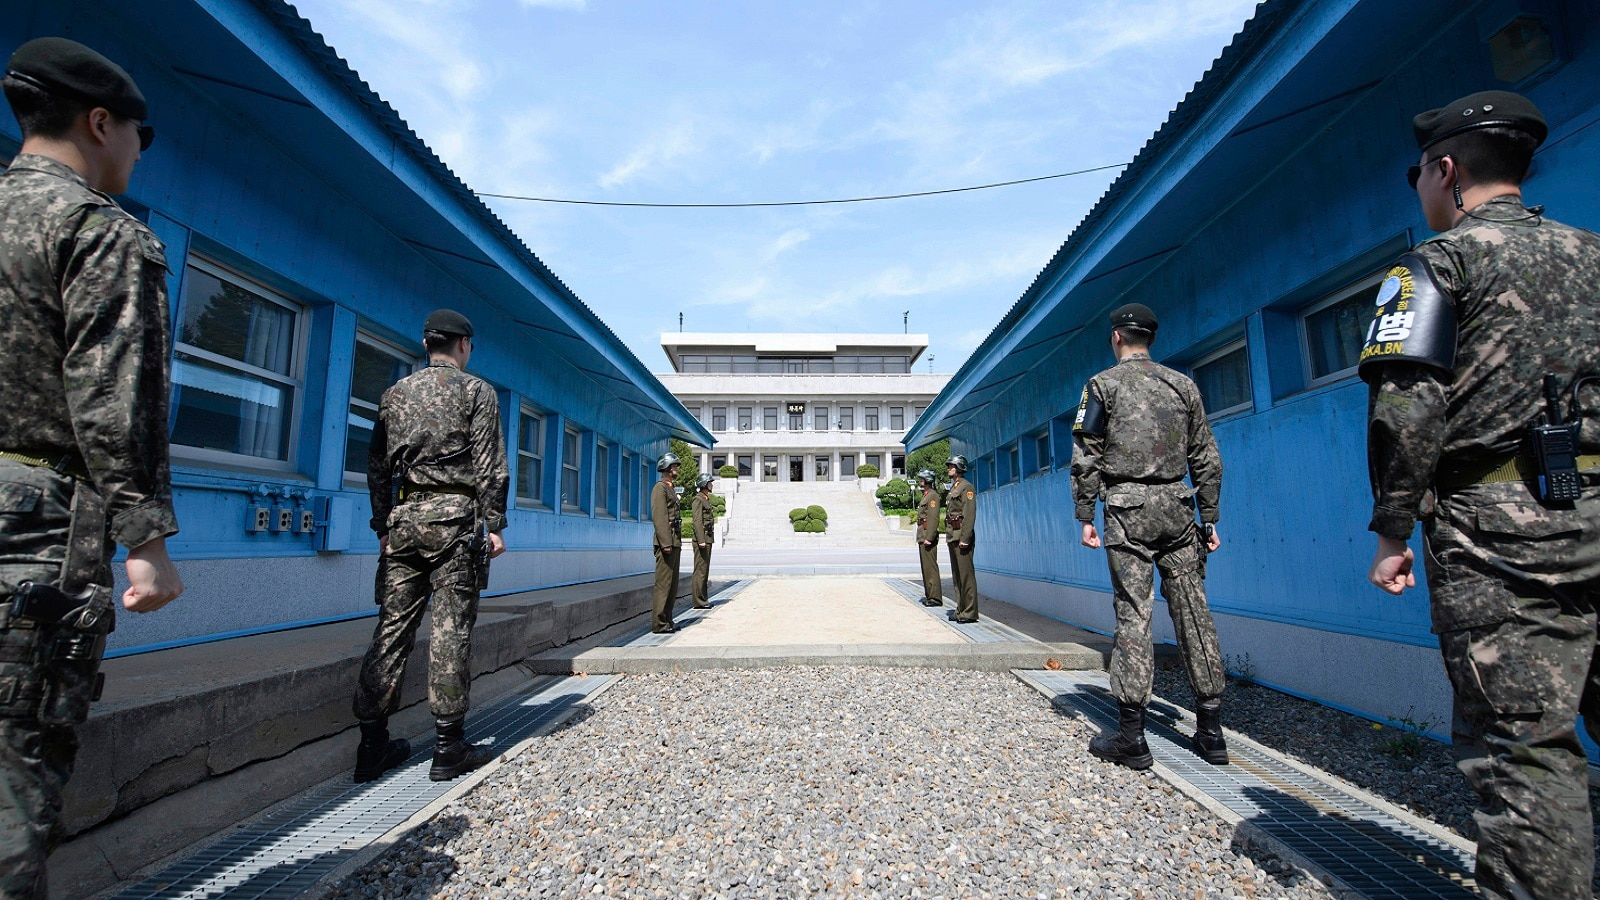 The two Koreas have been officially at war since the North invaded South in 1950.The tensions between the two nations that began as a result of the Cold war has turned the Korean border the most militarized zone in the world.Even two decades after the end of cold war, the situation remains unchanged in the peninsula. (Hwang Kwang-mo/Yonhap via AP)